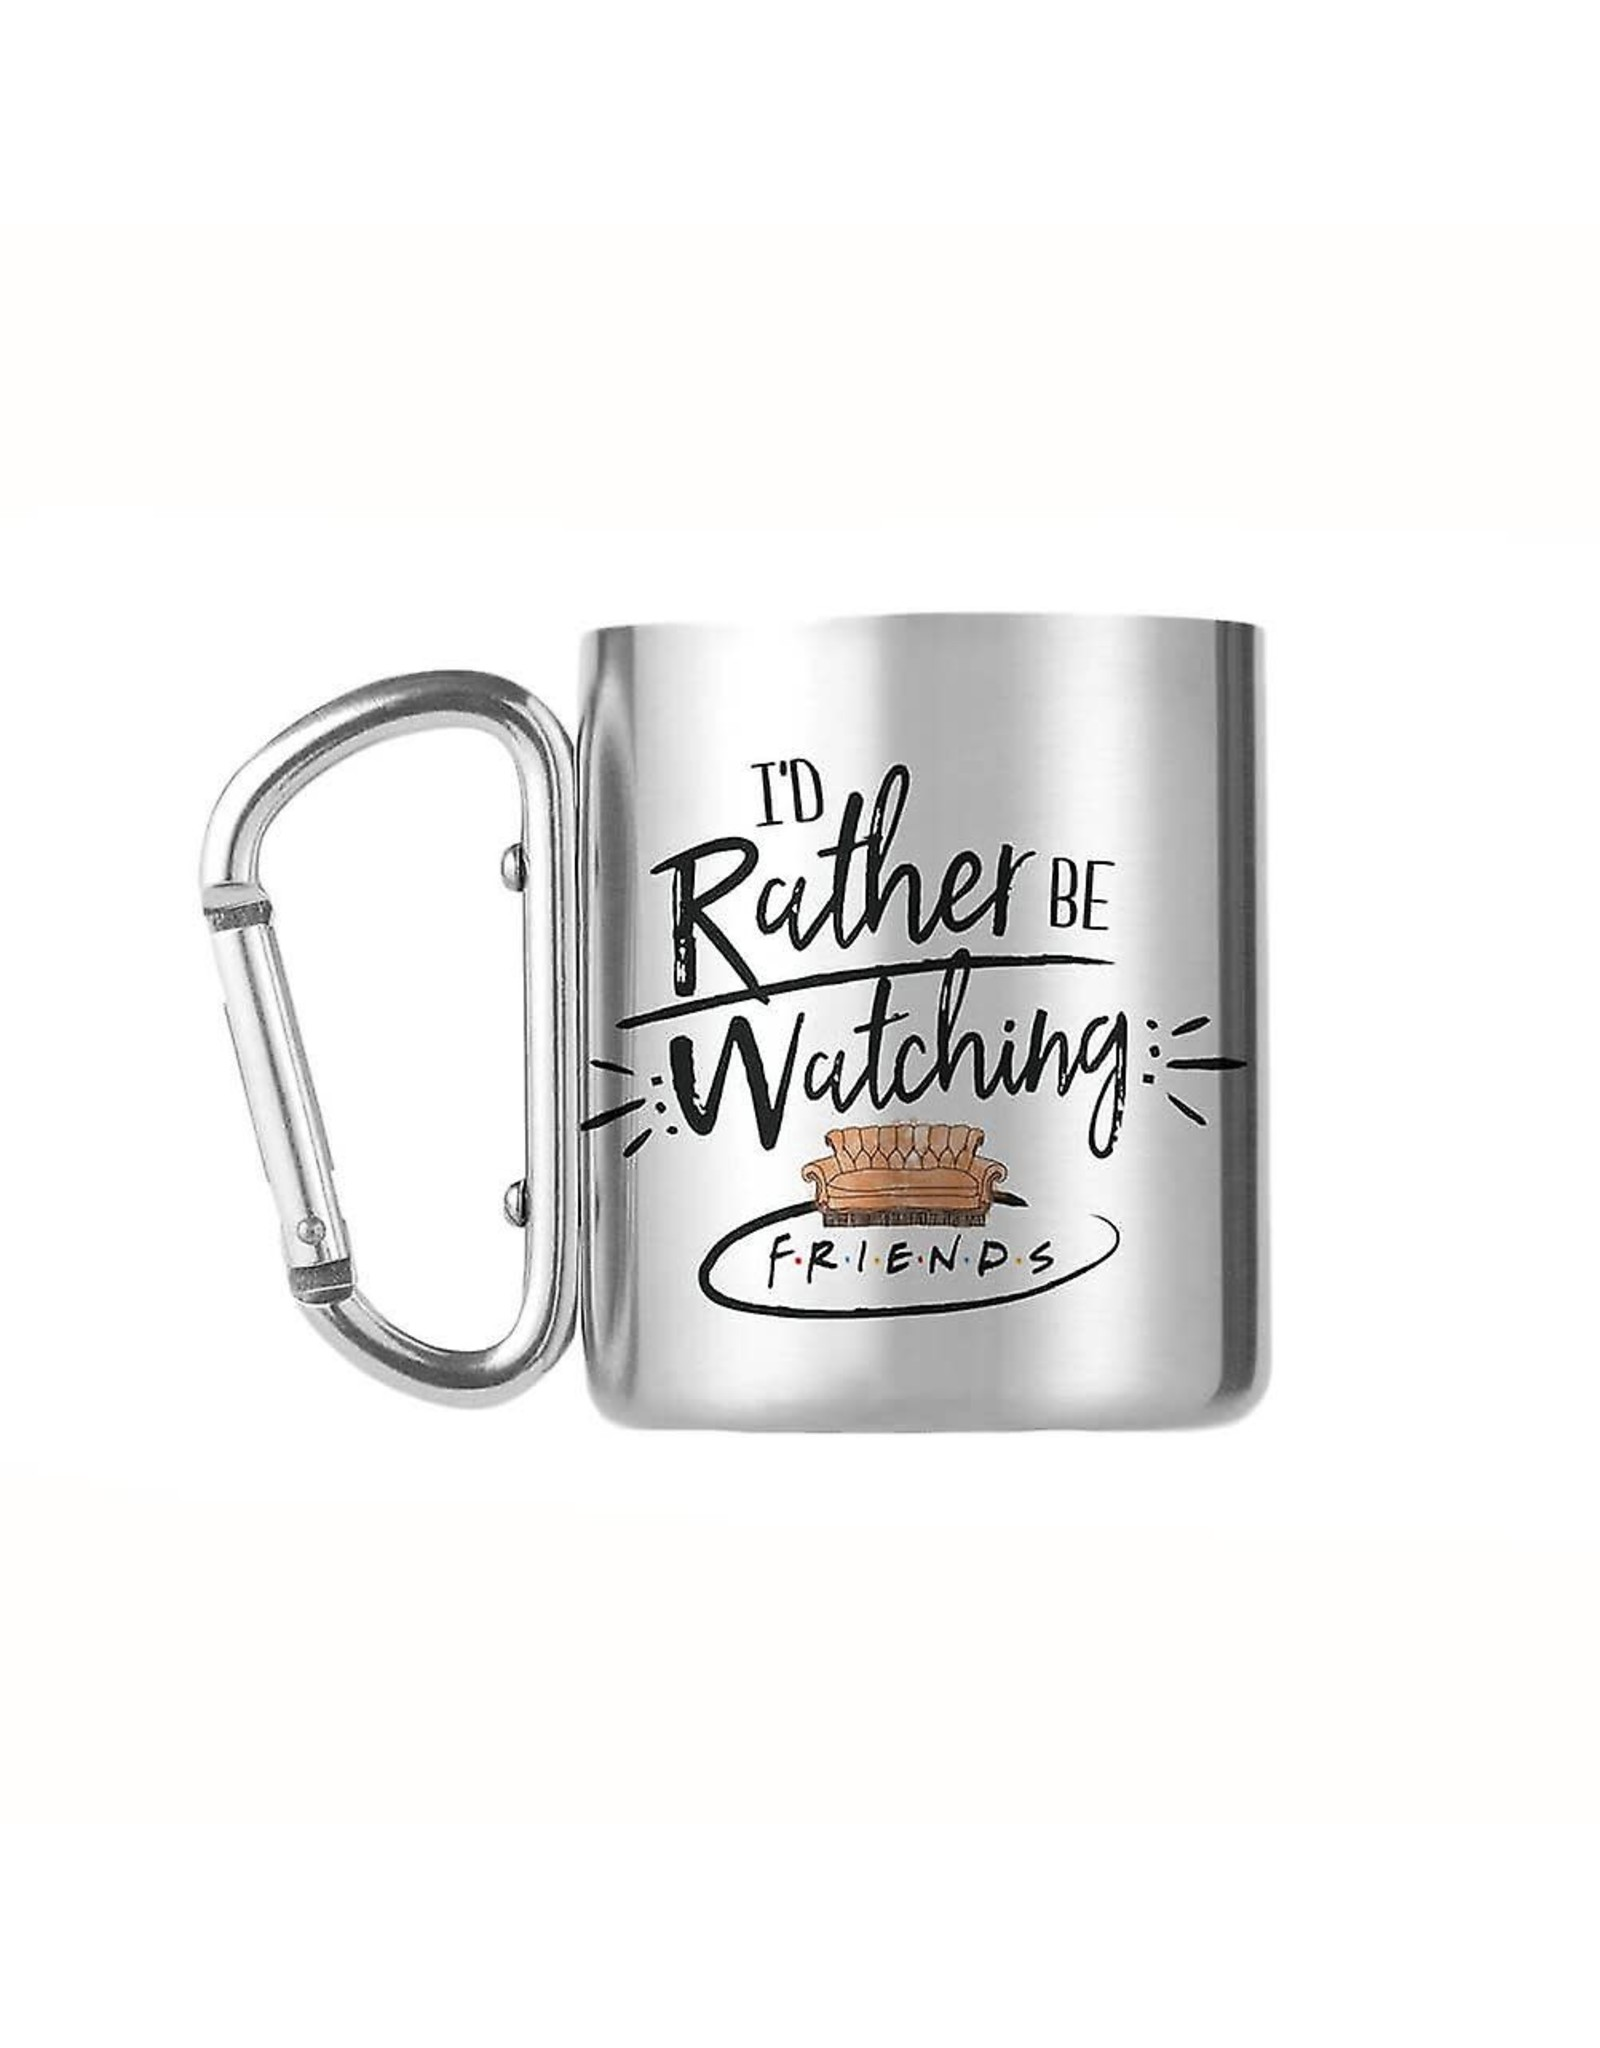 GBEye FRIENDS Carabiner Mug 240ml - Rather Be Watching